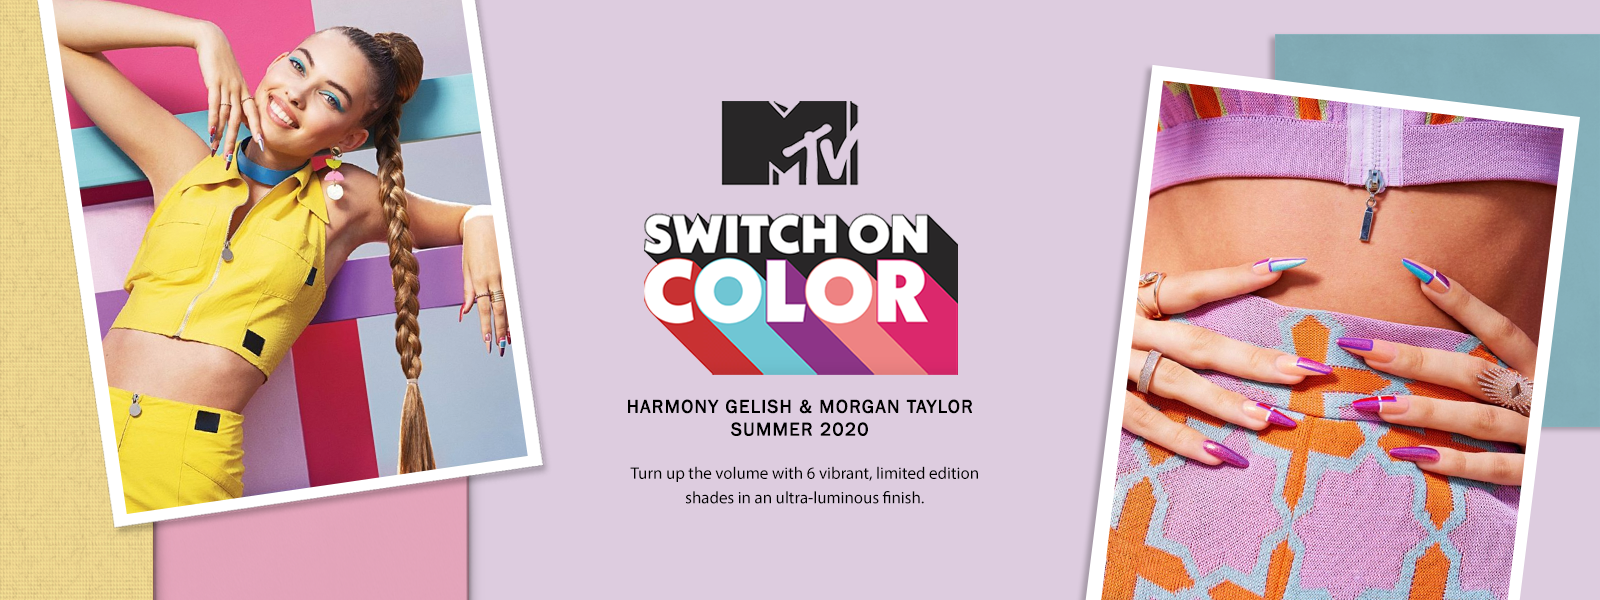 Gelish & Morgan Taylor MTV Switch On Color Summer 2020 Collection